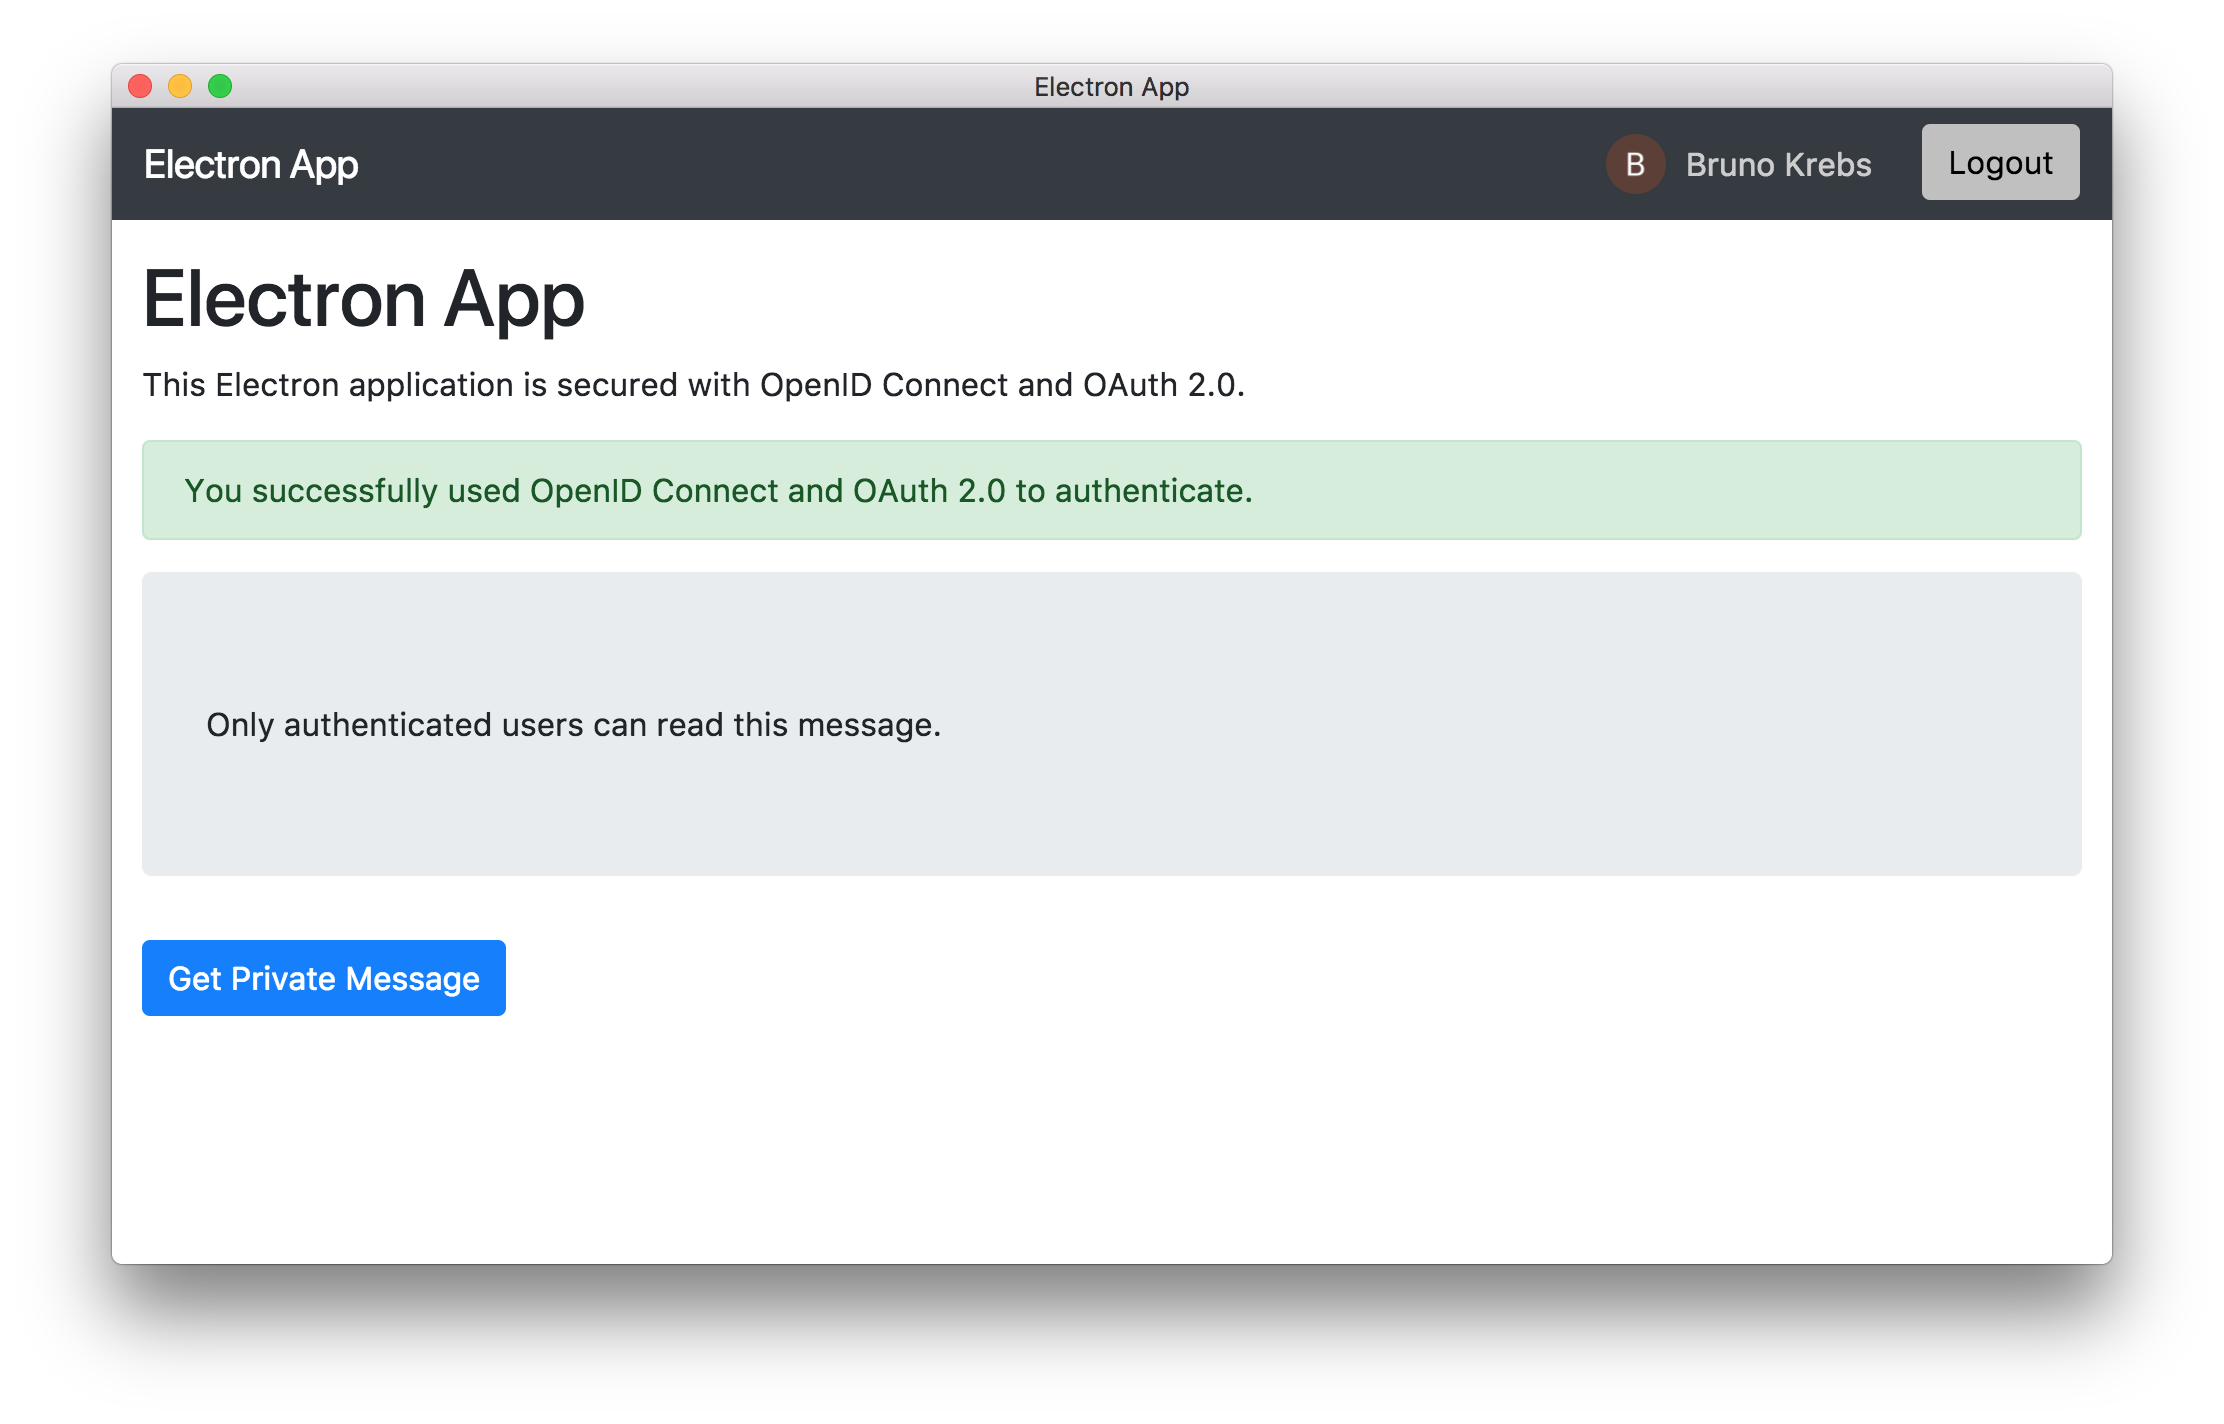 Running an Electron application secured with OpenID Connect and OAuth 2.0.